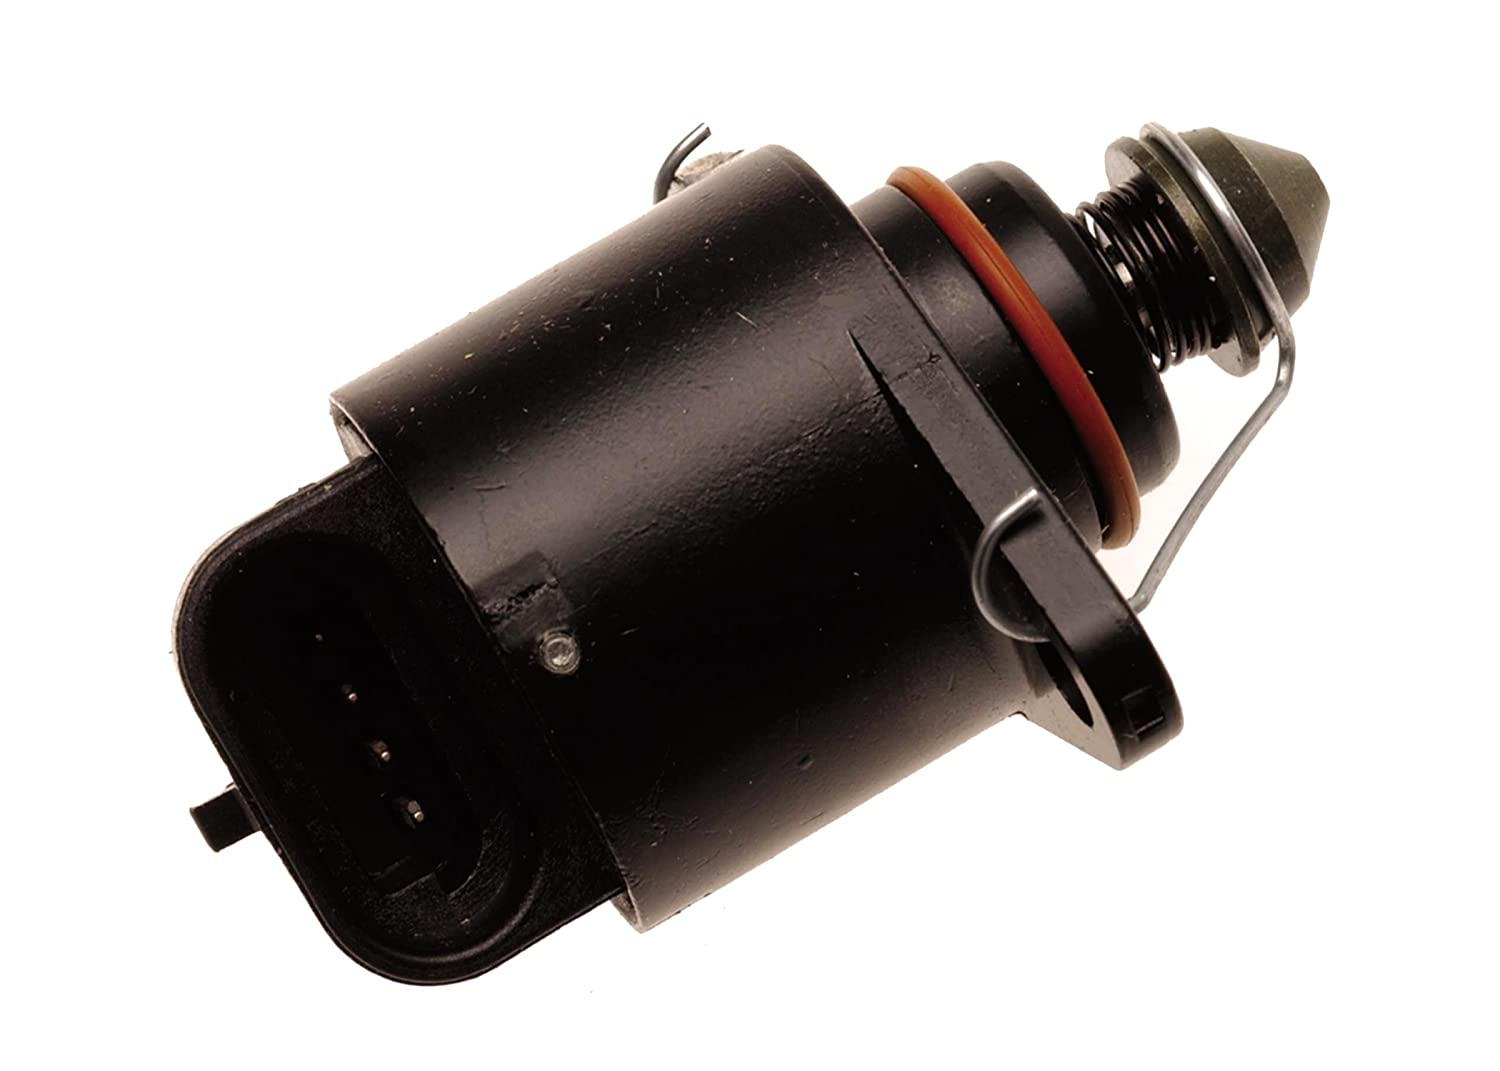 ACDelco 217-421 GM Original Equipment Fuel Injection Idle Air Control Valve with Seal 217-421-ACD